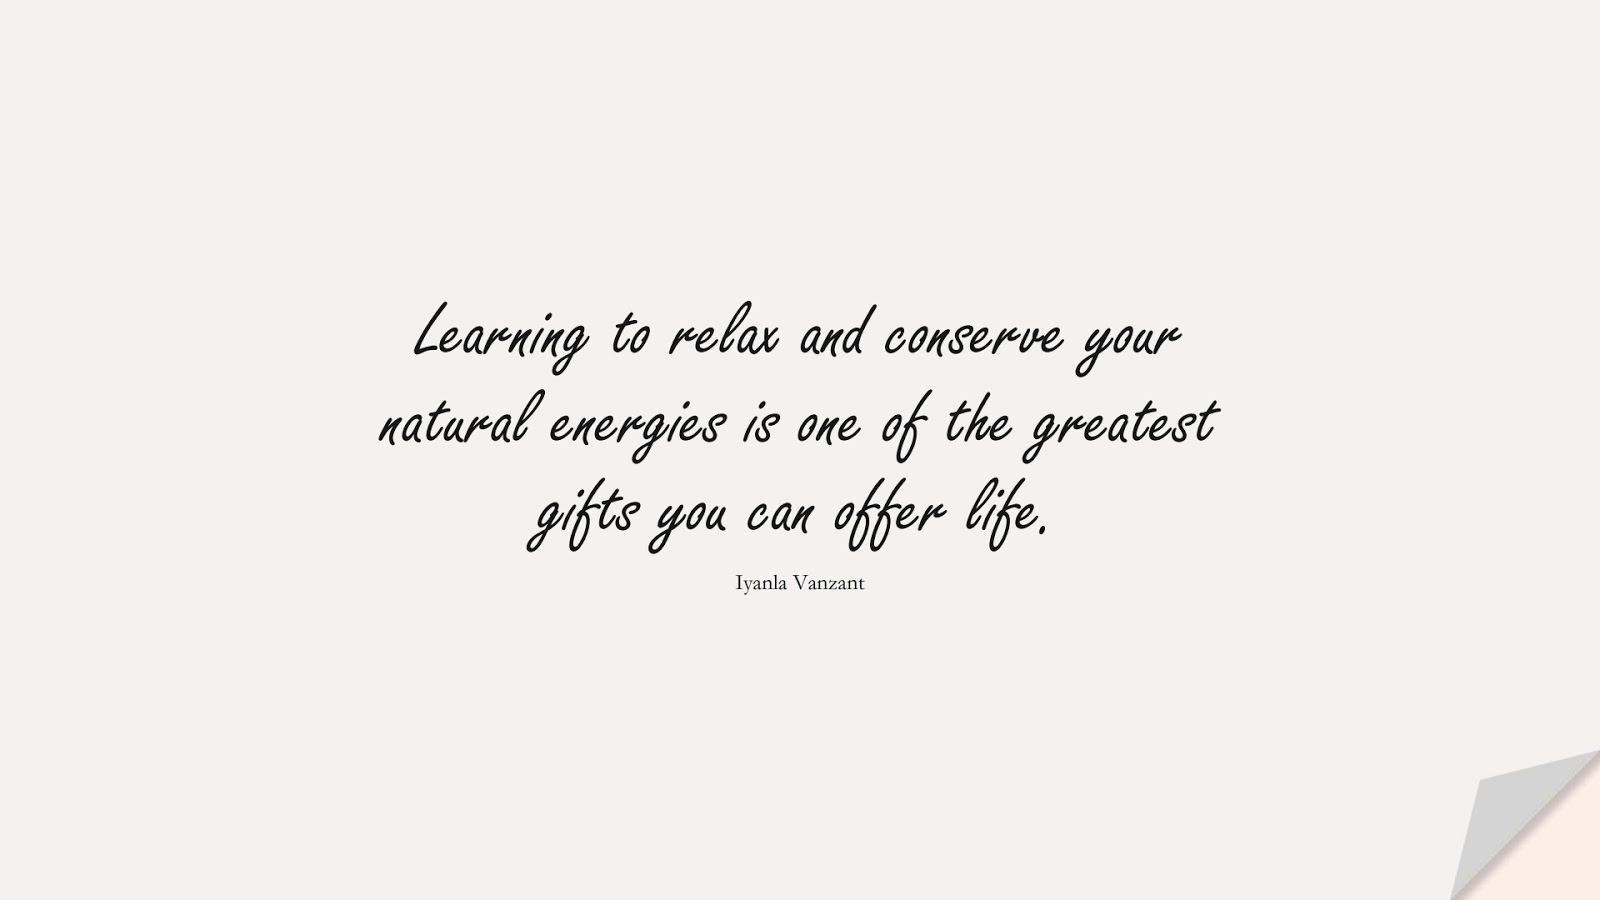 Learning to relax and conserve your natural energies is one of the greatest gifts you can offer life. (Iyanla Vanzant);  #CalmQuotes